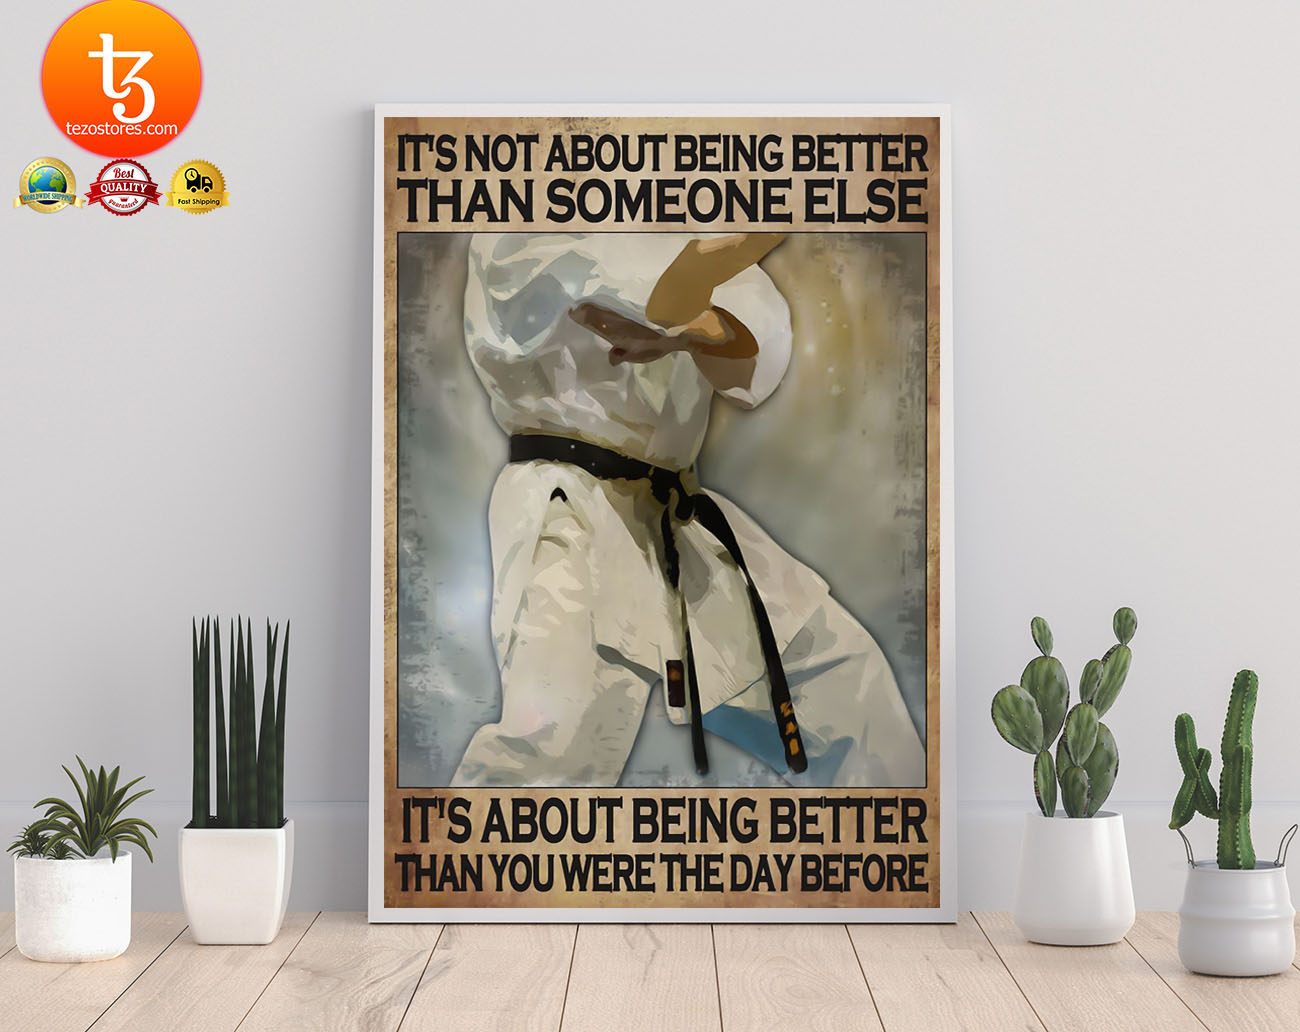 It's not about being better than someone else it's about being better than you were the day before poster 2